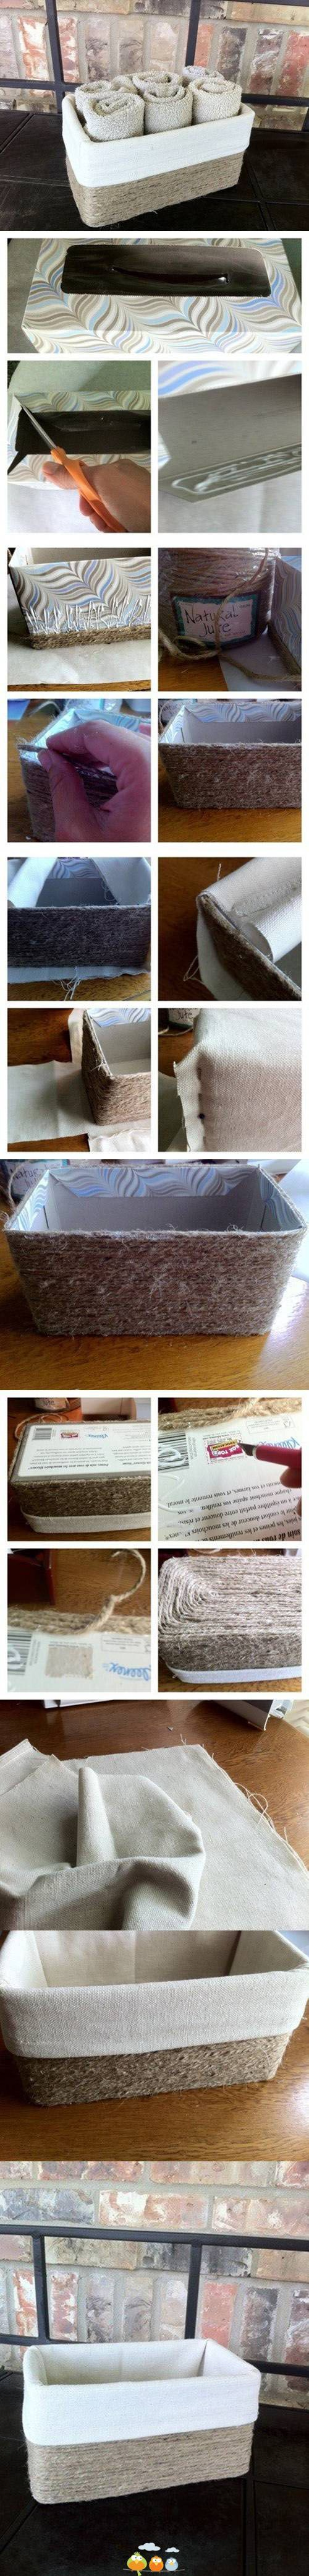 how to pimp a tissue or a shoe box.: